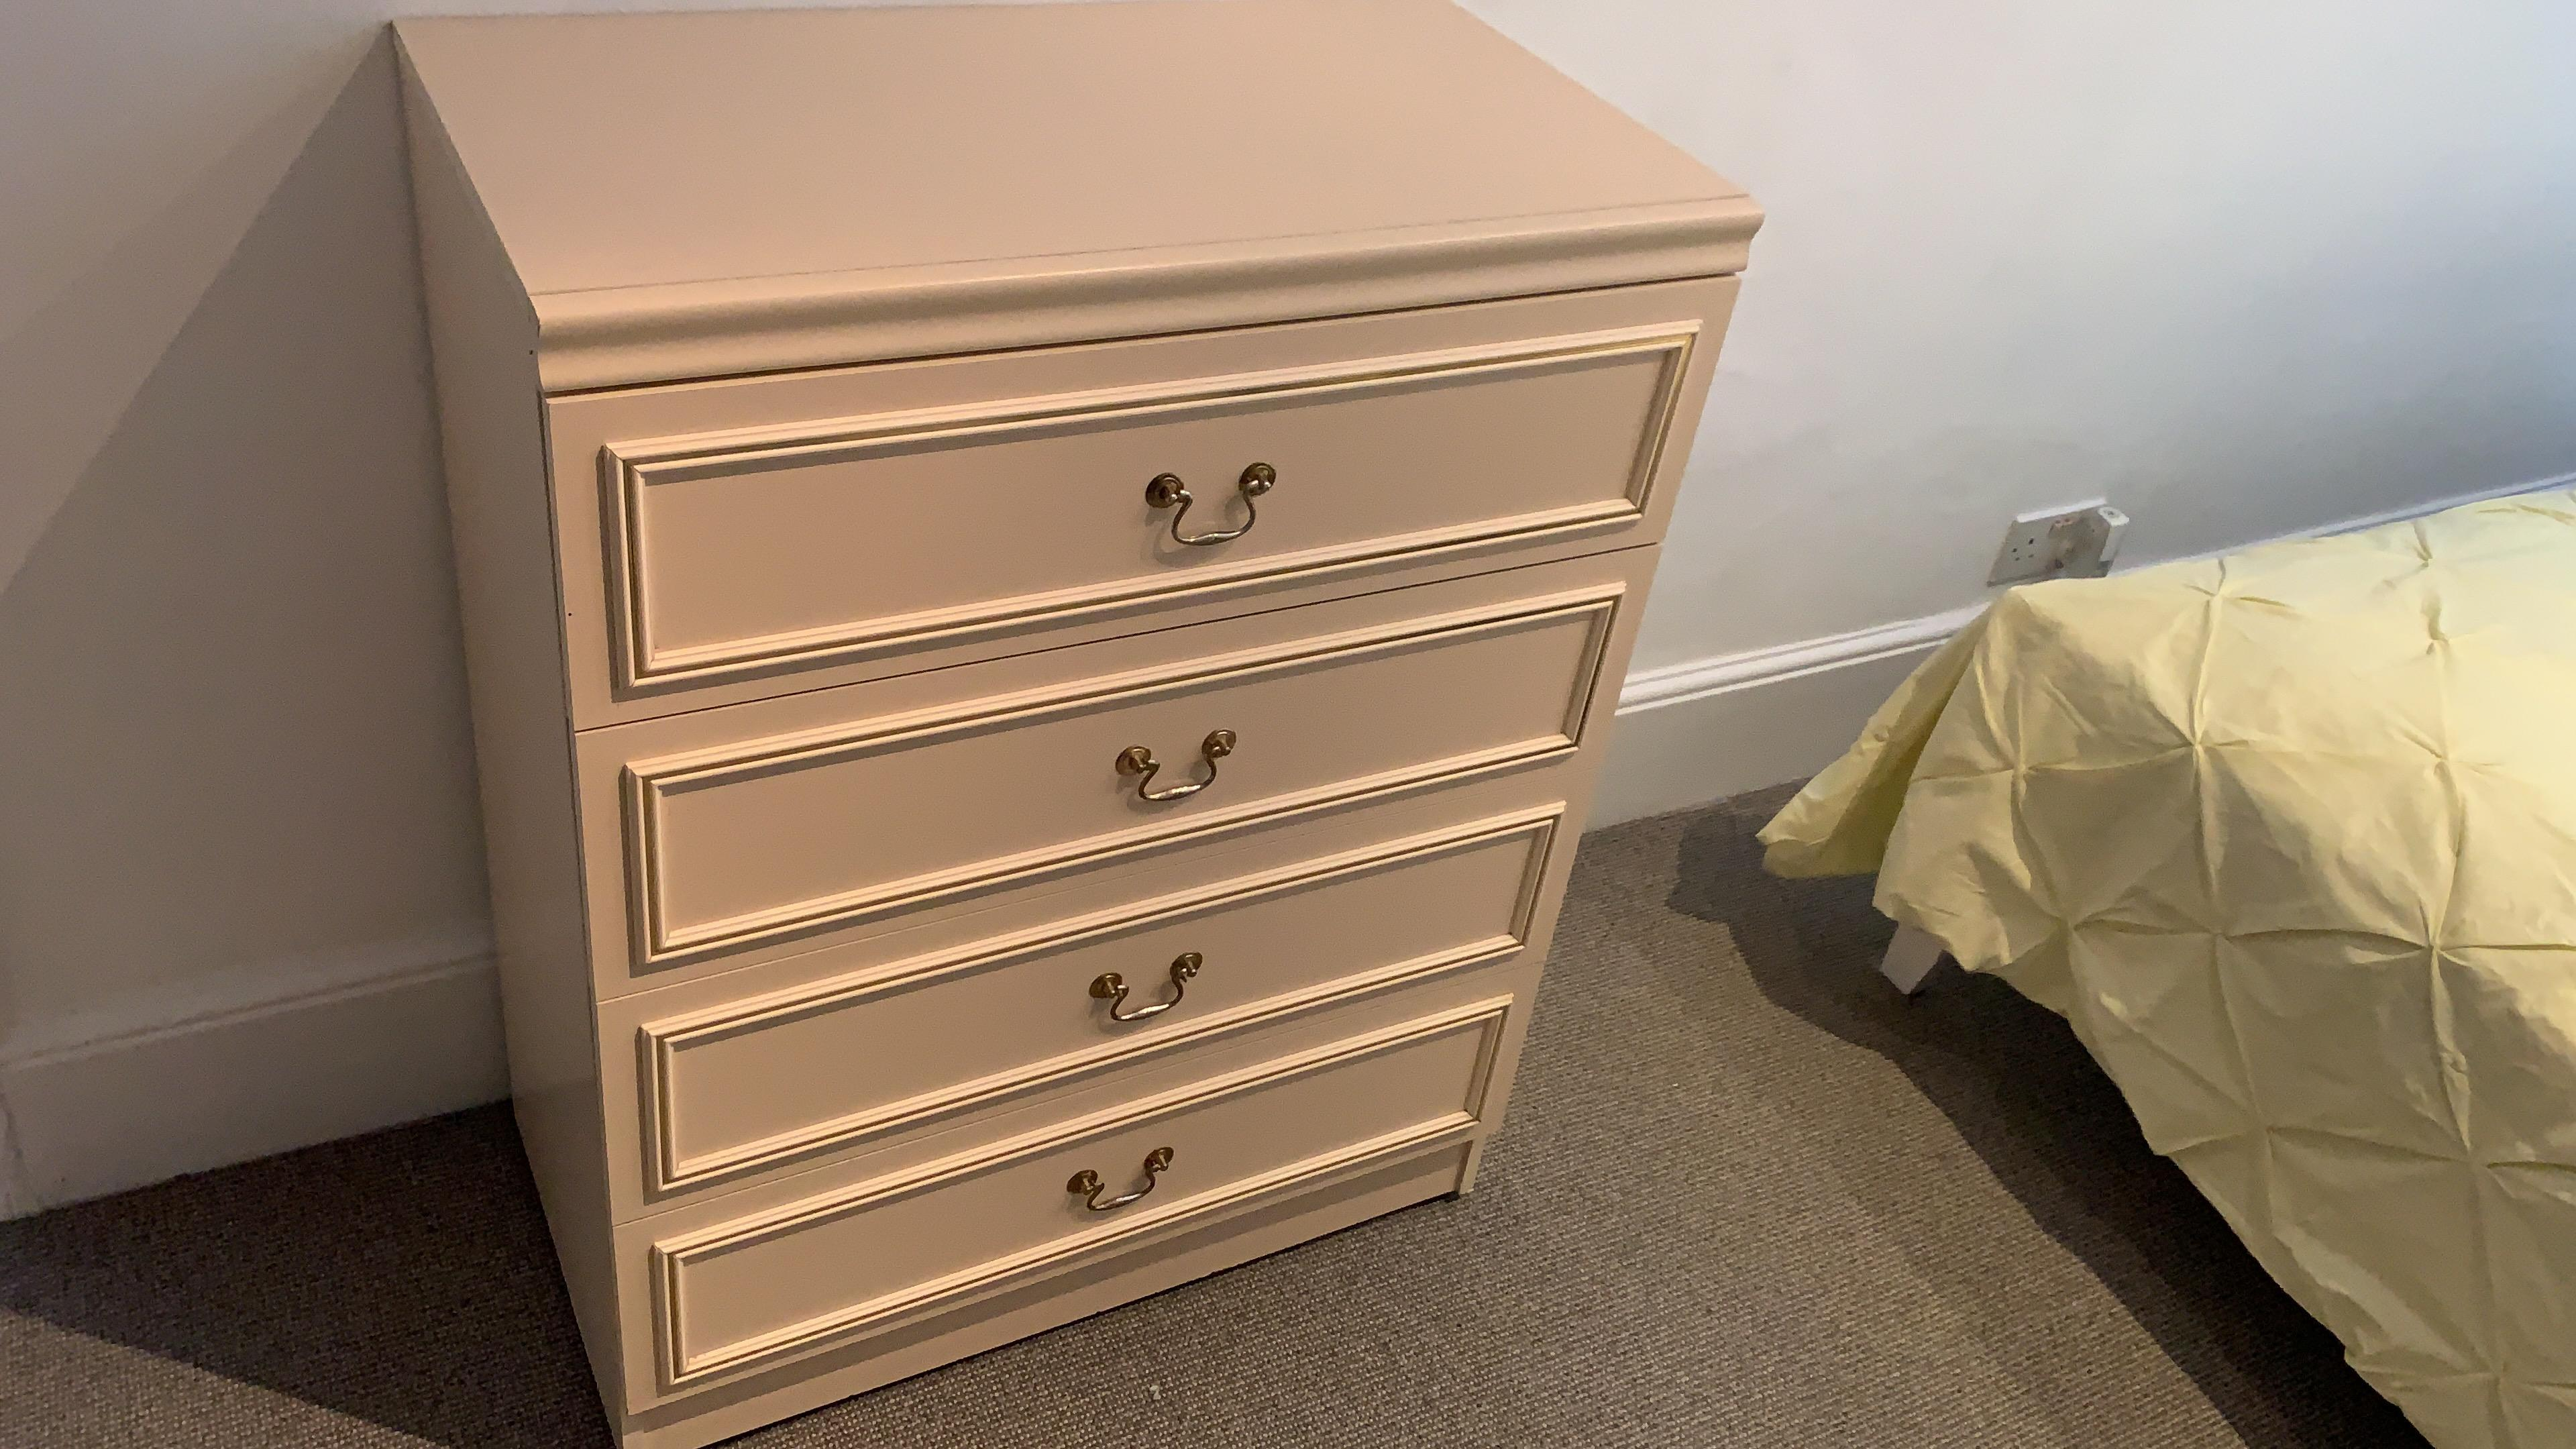 4 Drawer Beigy white Chest of Draws On Wheels Very Good